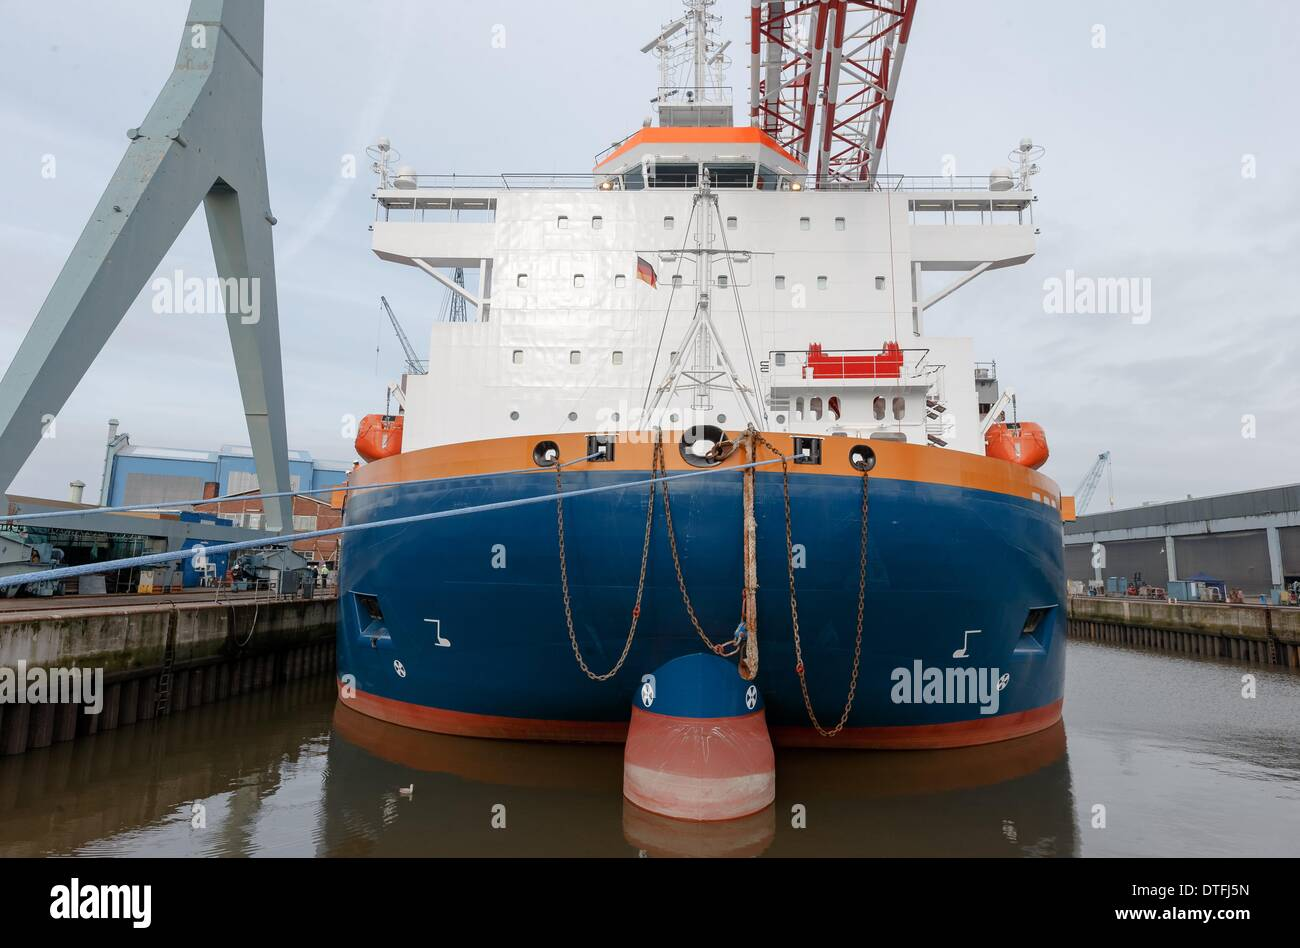 Hamburg, Germany. 17th Feb, 2014. Wind turbine installation vessel Aeolus is moored at the Sietas shipyard in Hamburg, Germany, 17 February 2014. Aeolus is the first wind turbine installation vessel to be designed and built in Germany and will be used by Van Oord for the construction of wind turbines at the Eneco Luchterduinen wind park from July 2014. Photo: MARKUS SCHOLZ/DPA/Alamy Live News - Stock Image